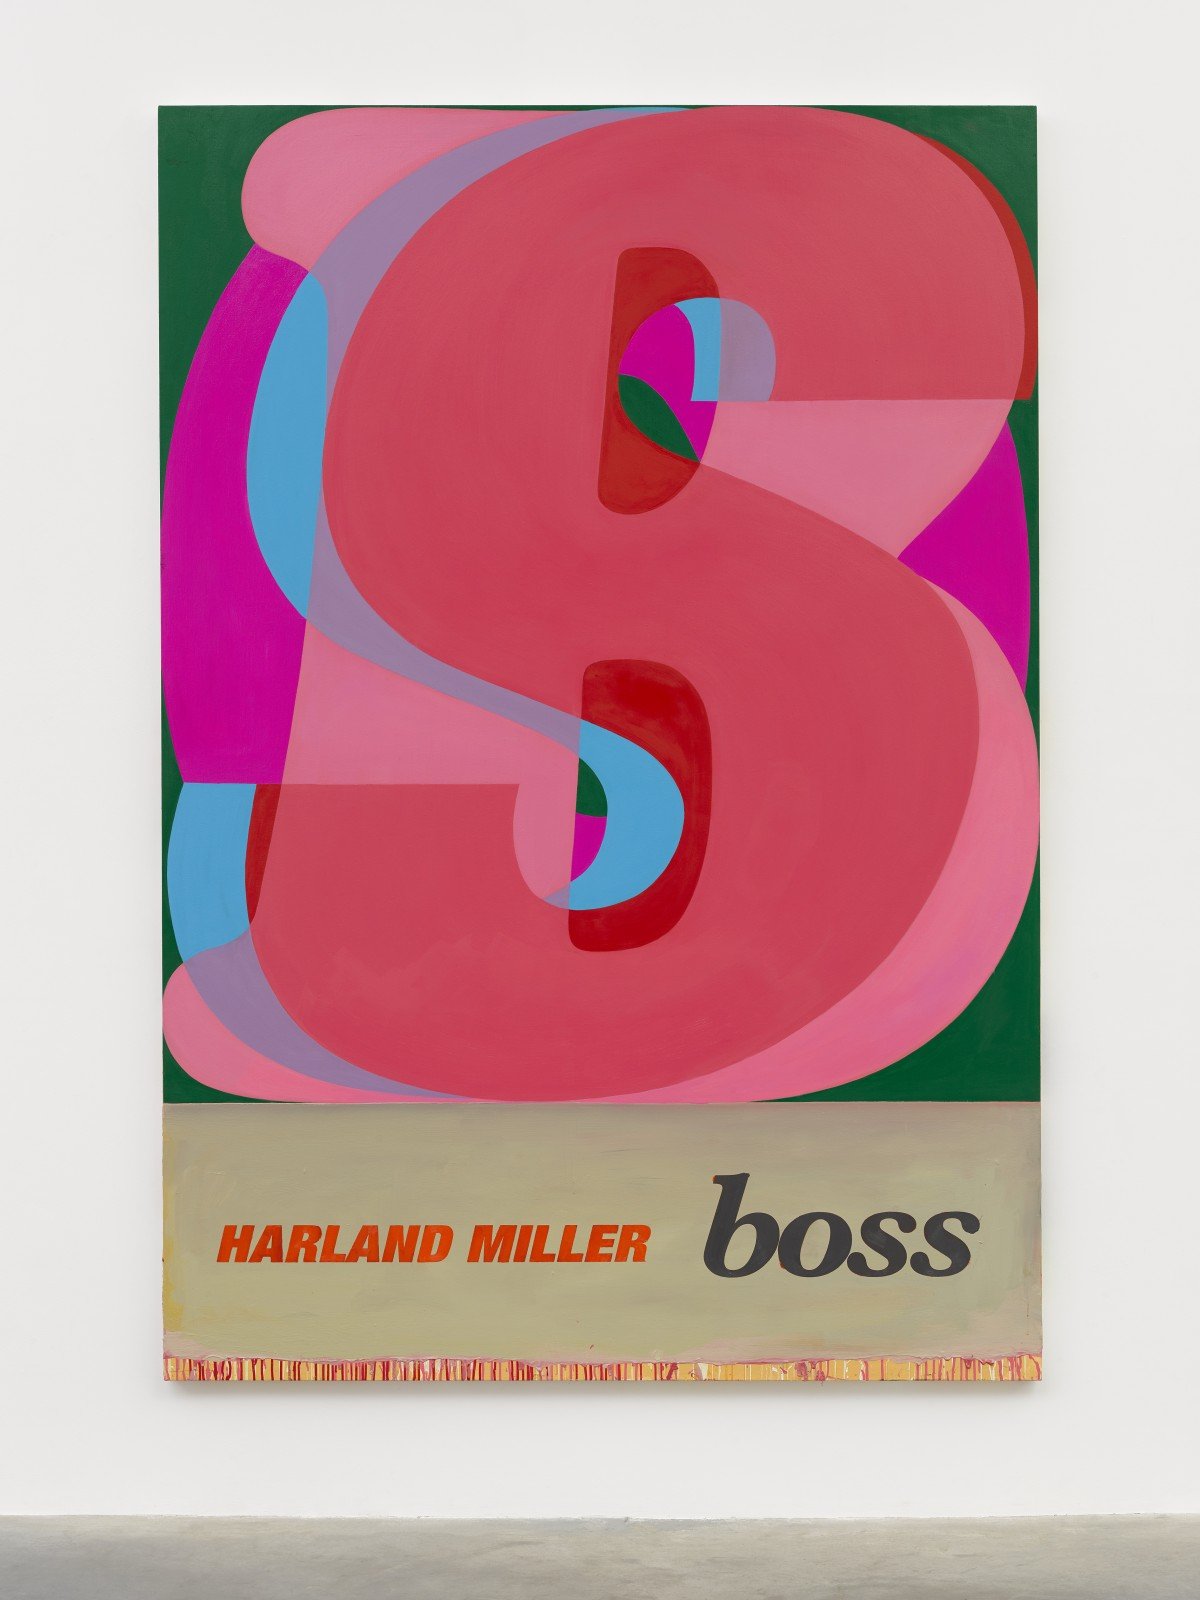 Boss, 2019 © Harland Miller. Photo © White Cube (Theo Christelis) Courtesy White Cube